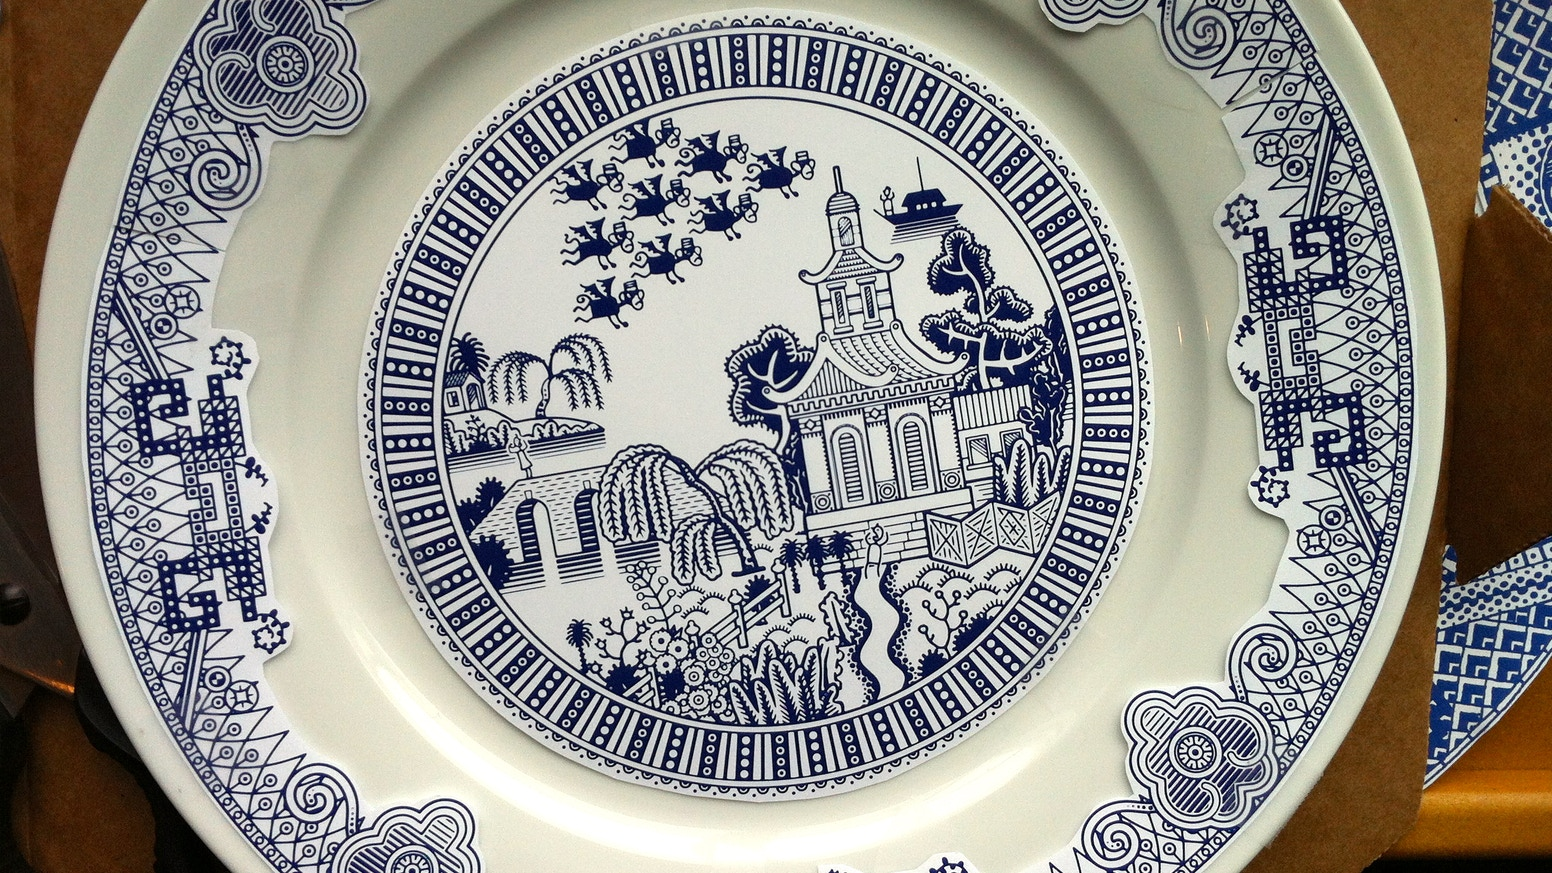 Traditional blue plate updated to suit modern appetite for calamity.